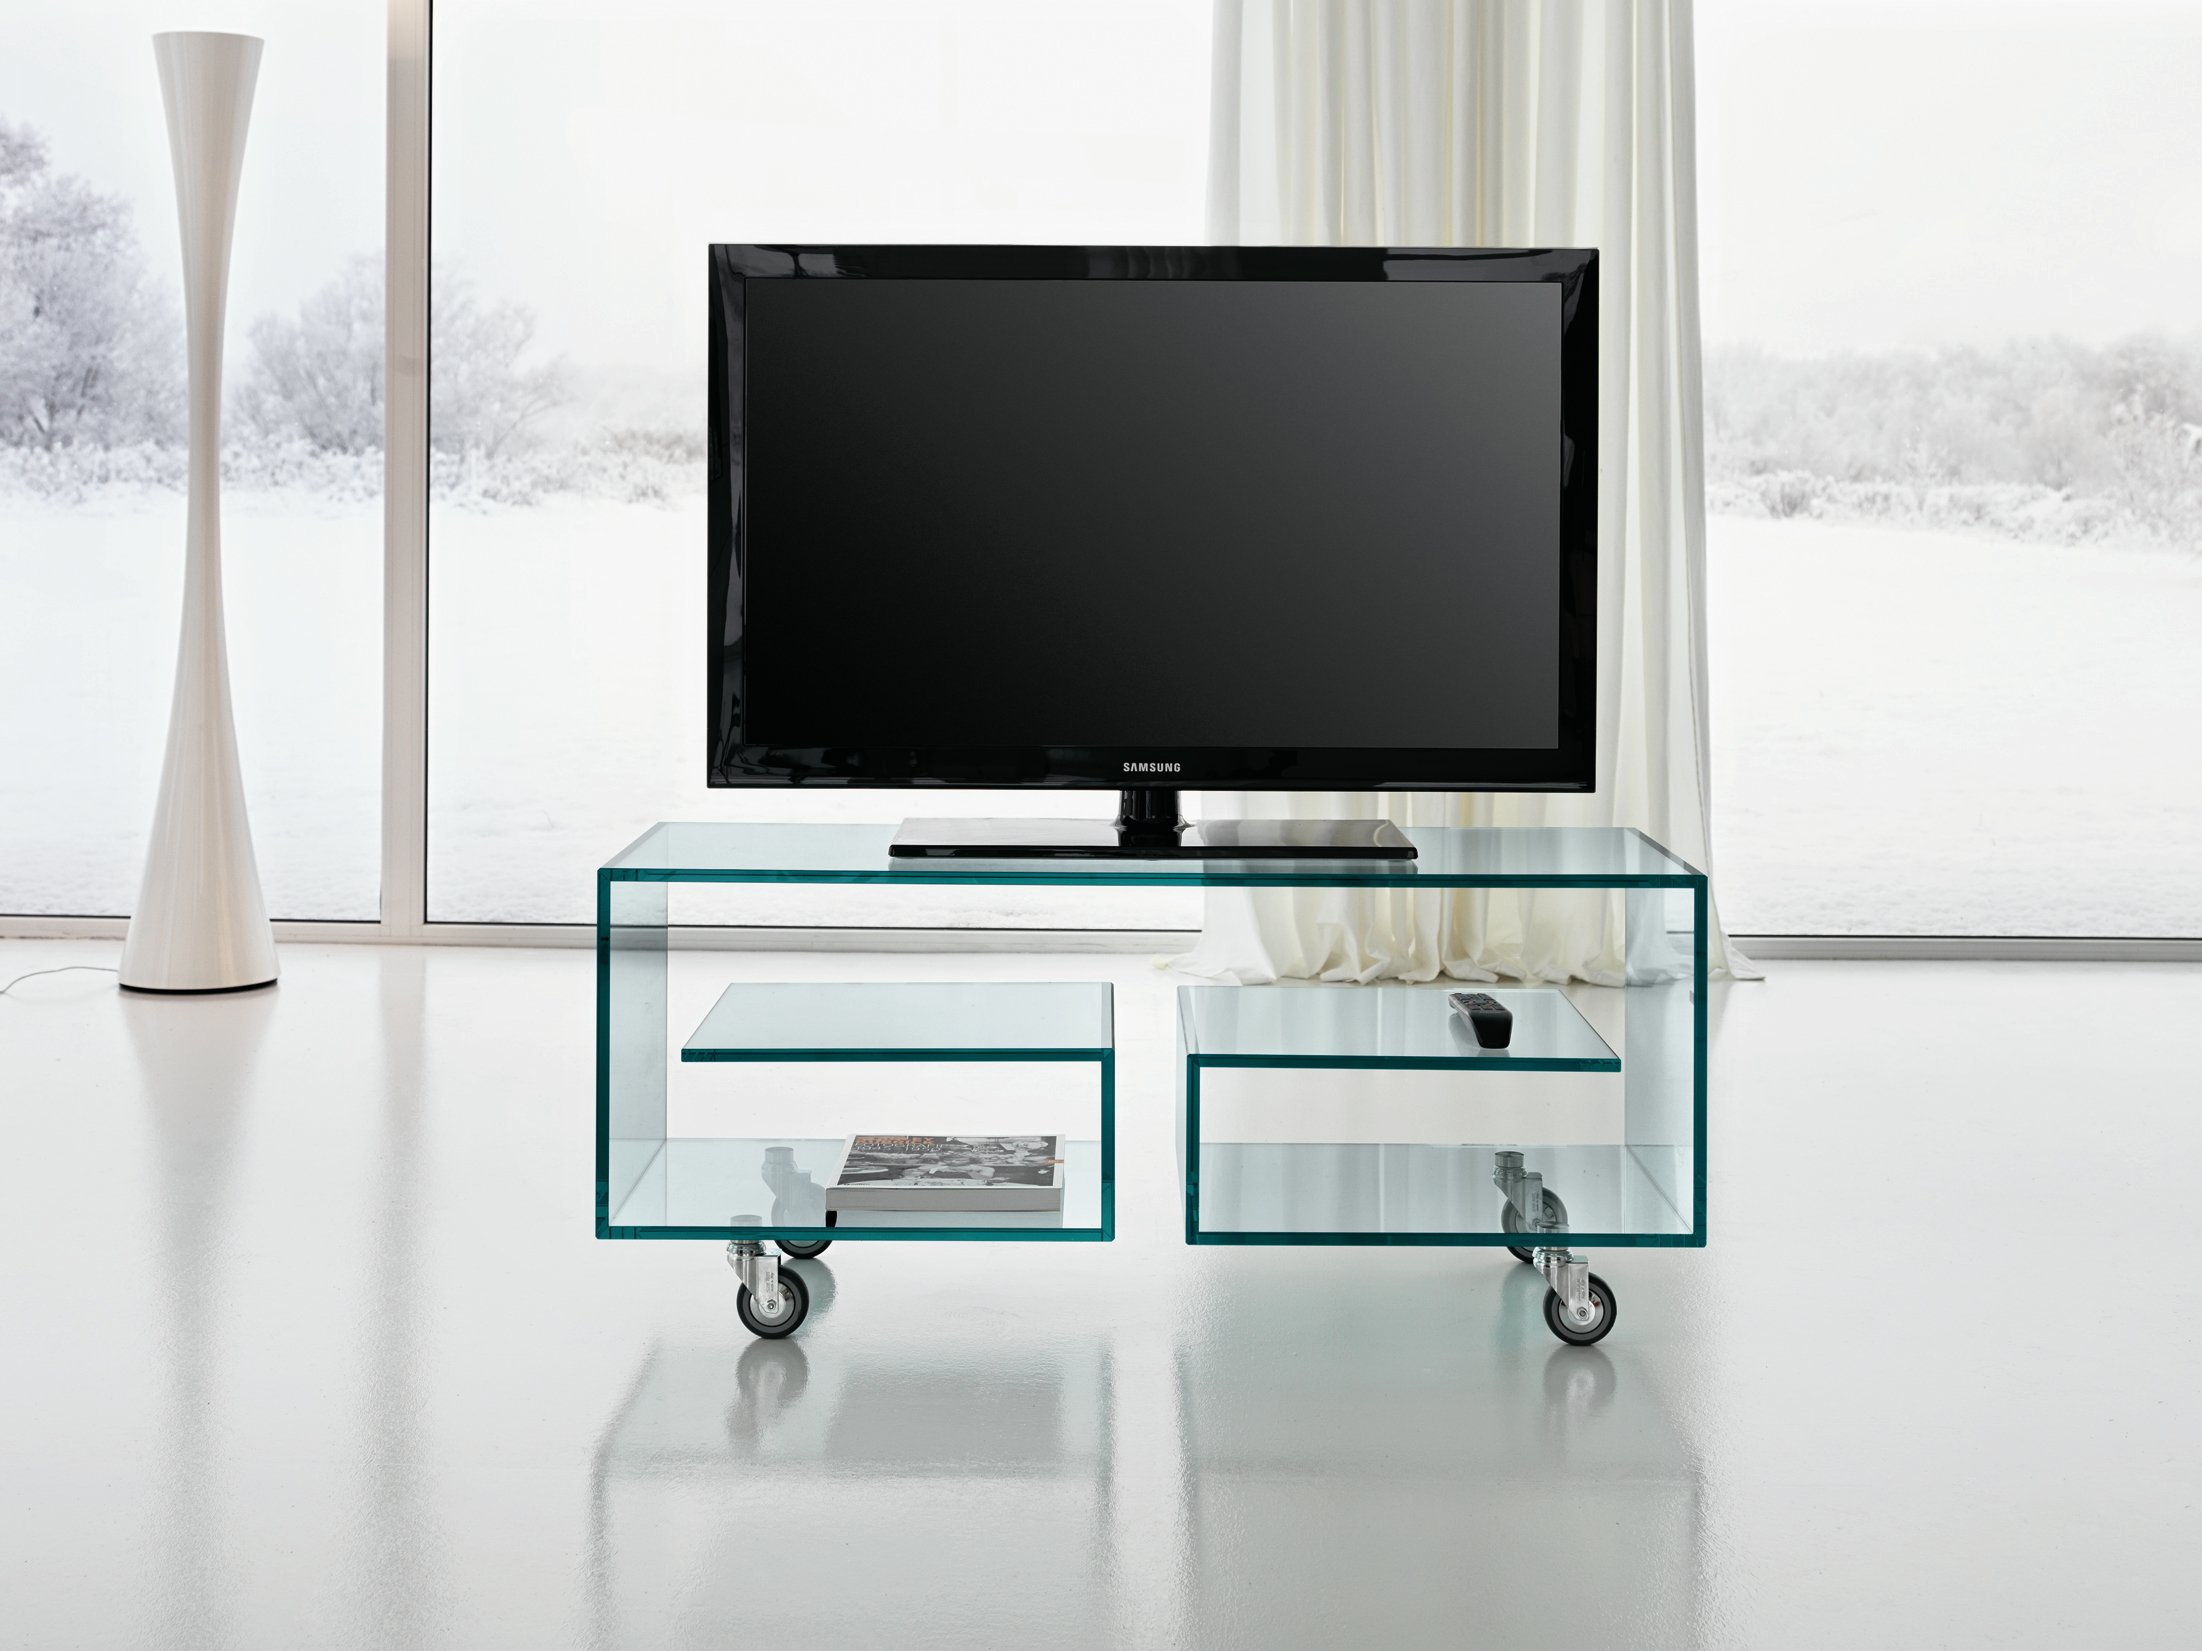 tv m bel aus glas auf rollen fl 1 by t d tonelli design design isao hosoe. Black Bedroom Furniture Sets. Home Design Ideas